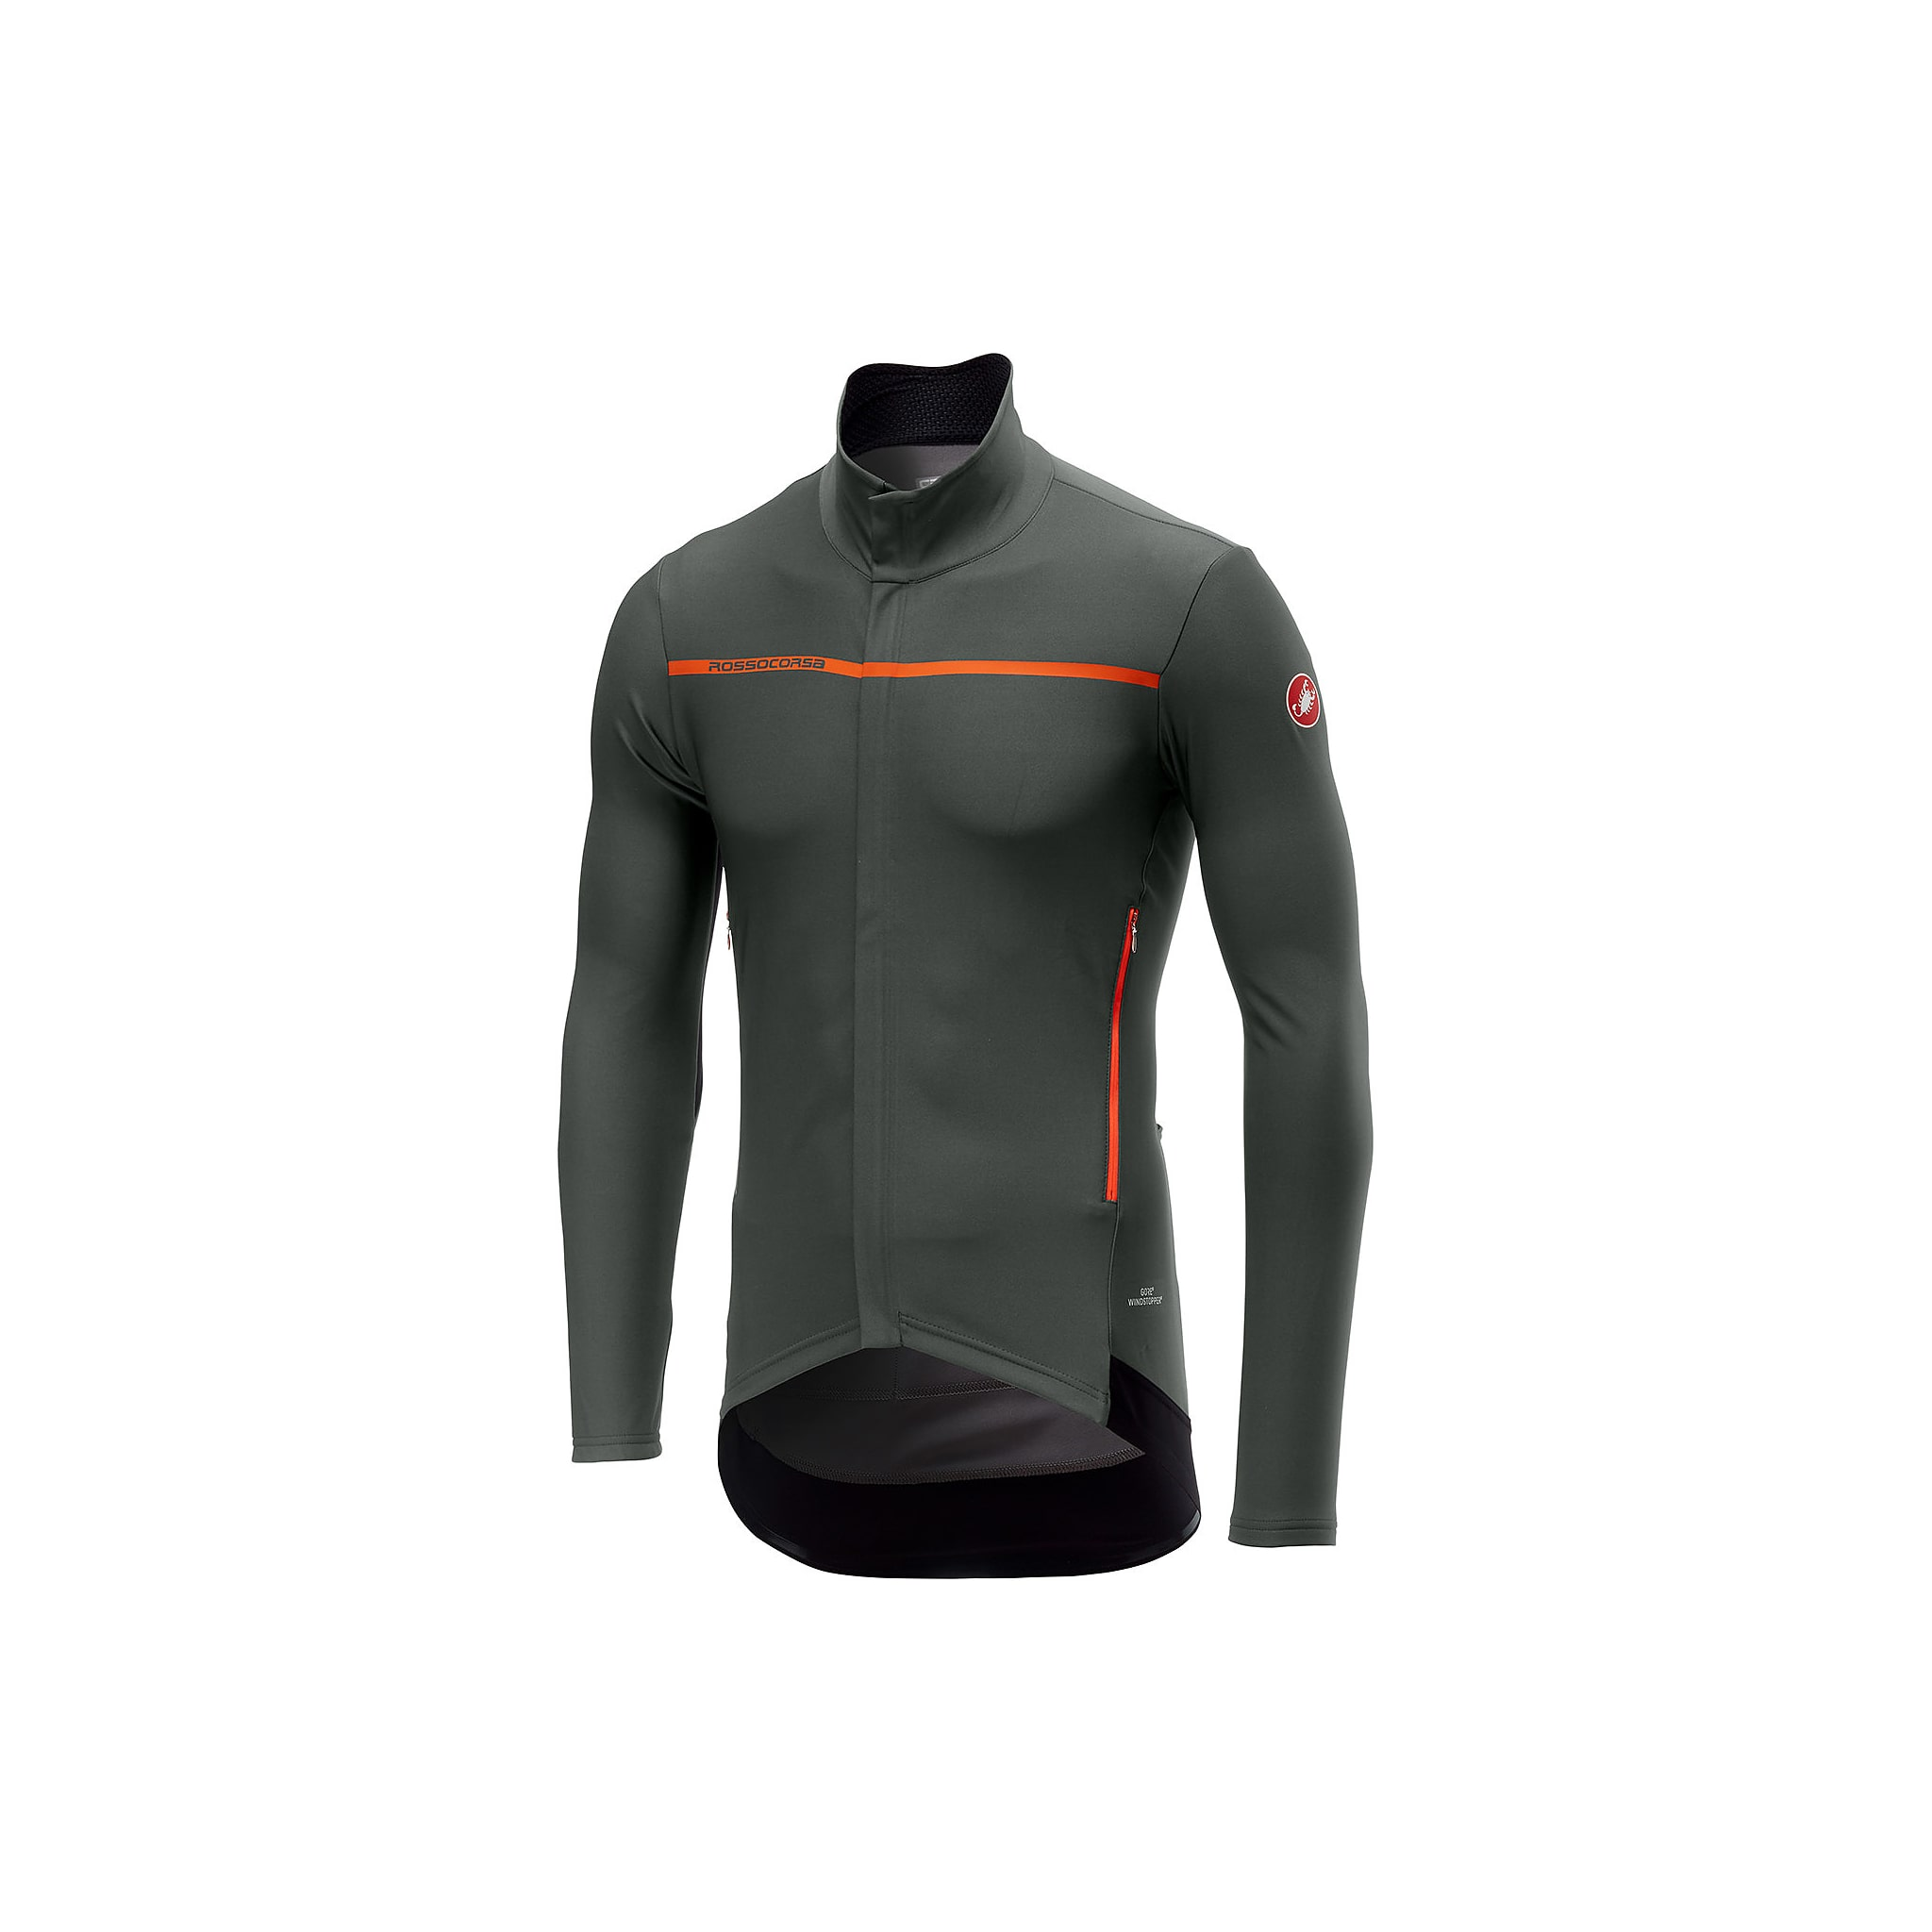 Perfetto Long Sleeve